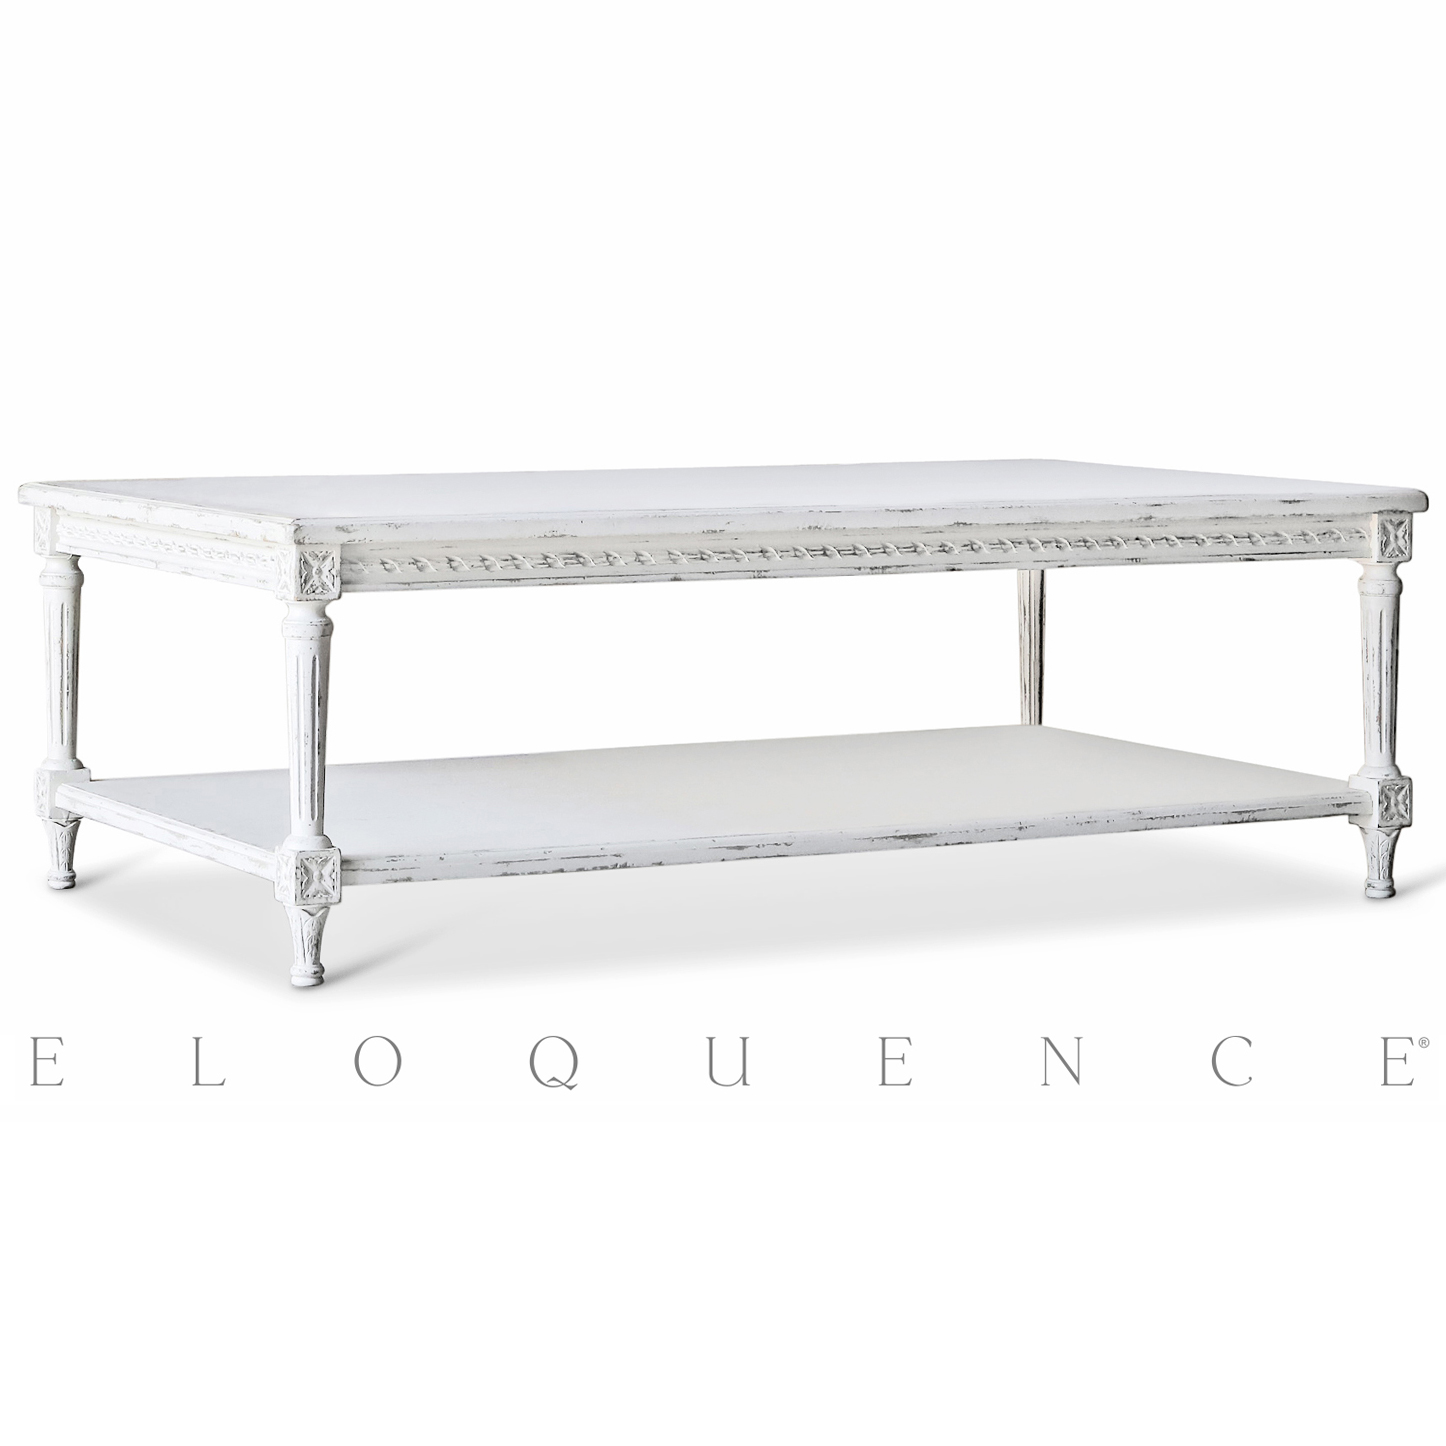 Eloquence® Grande Le Courte Coffee Table in Oyster